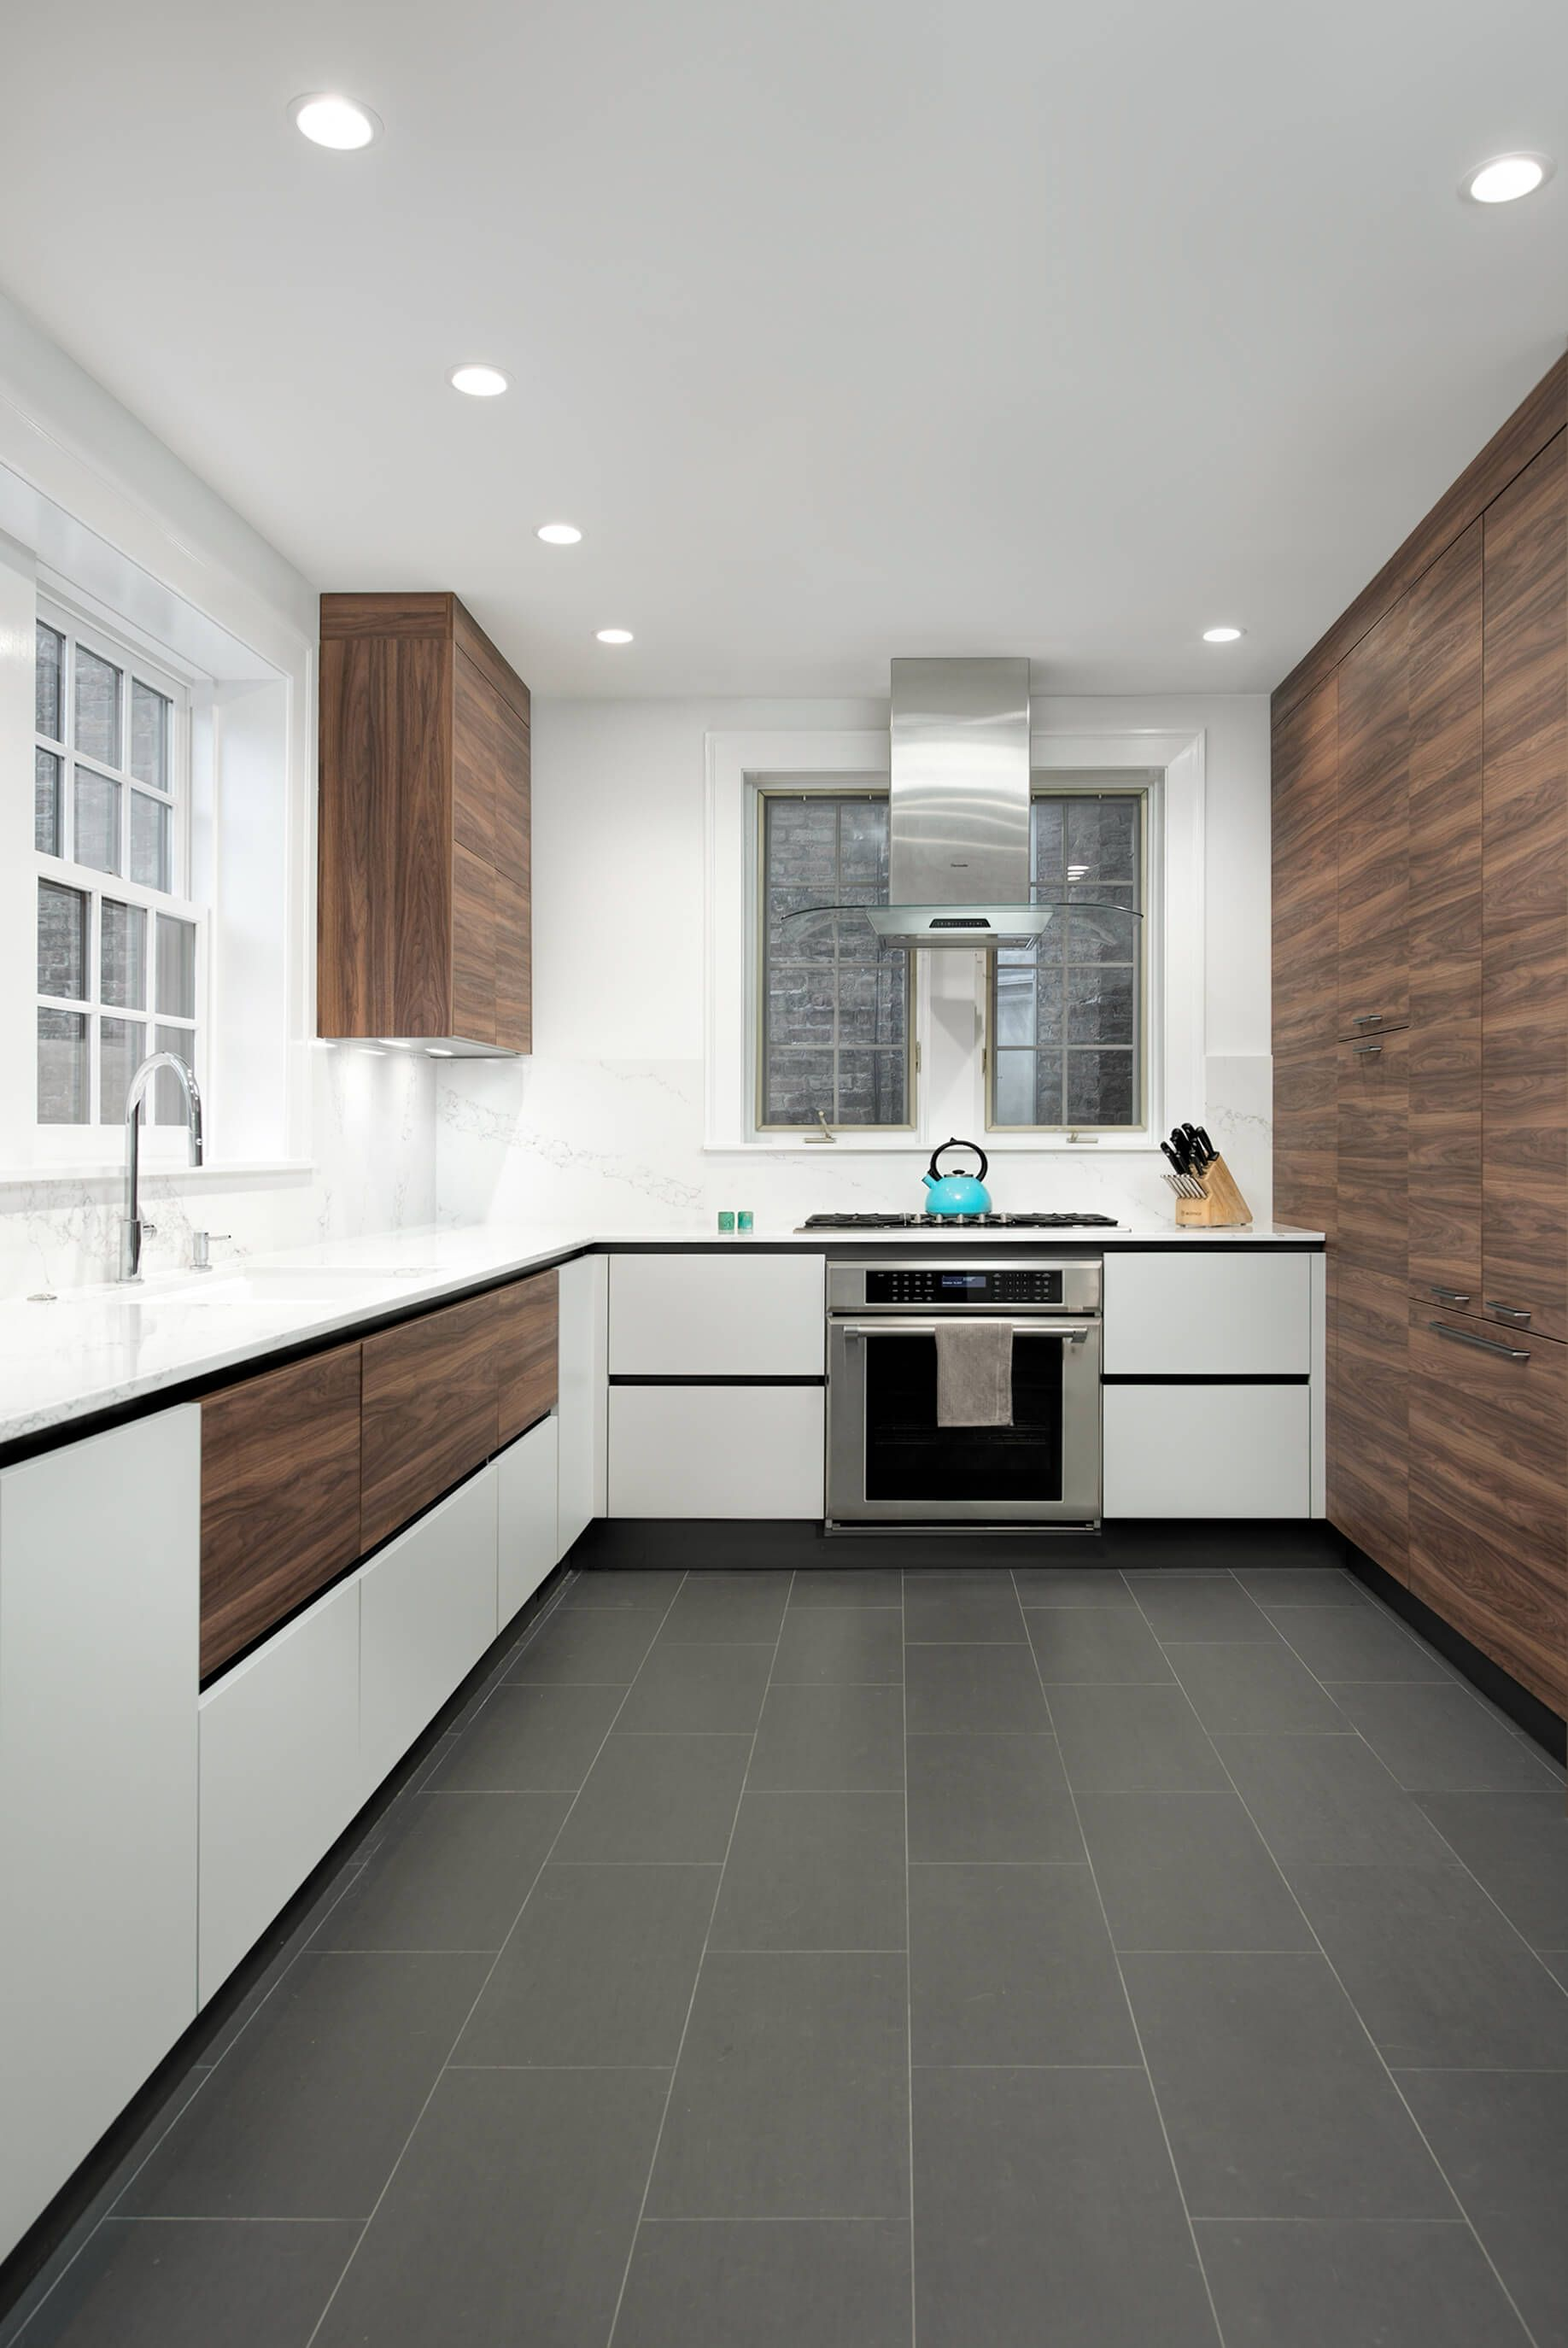 L-förmige modulare küche designs helene model kitchen by zecchinon project completed by archisesto